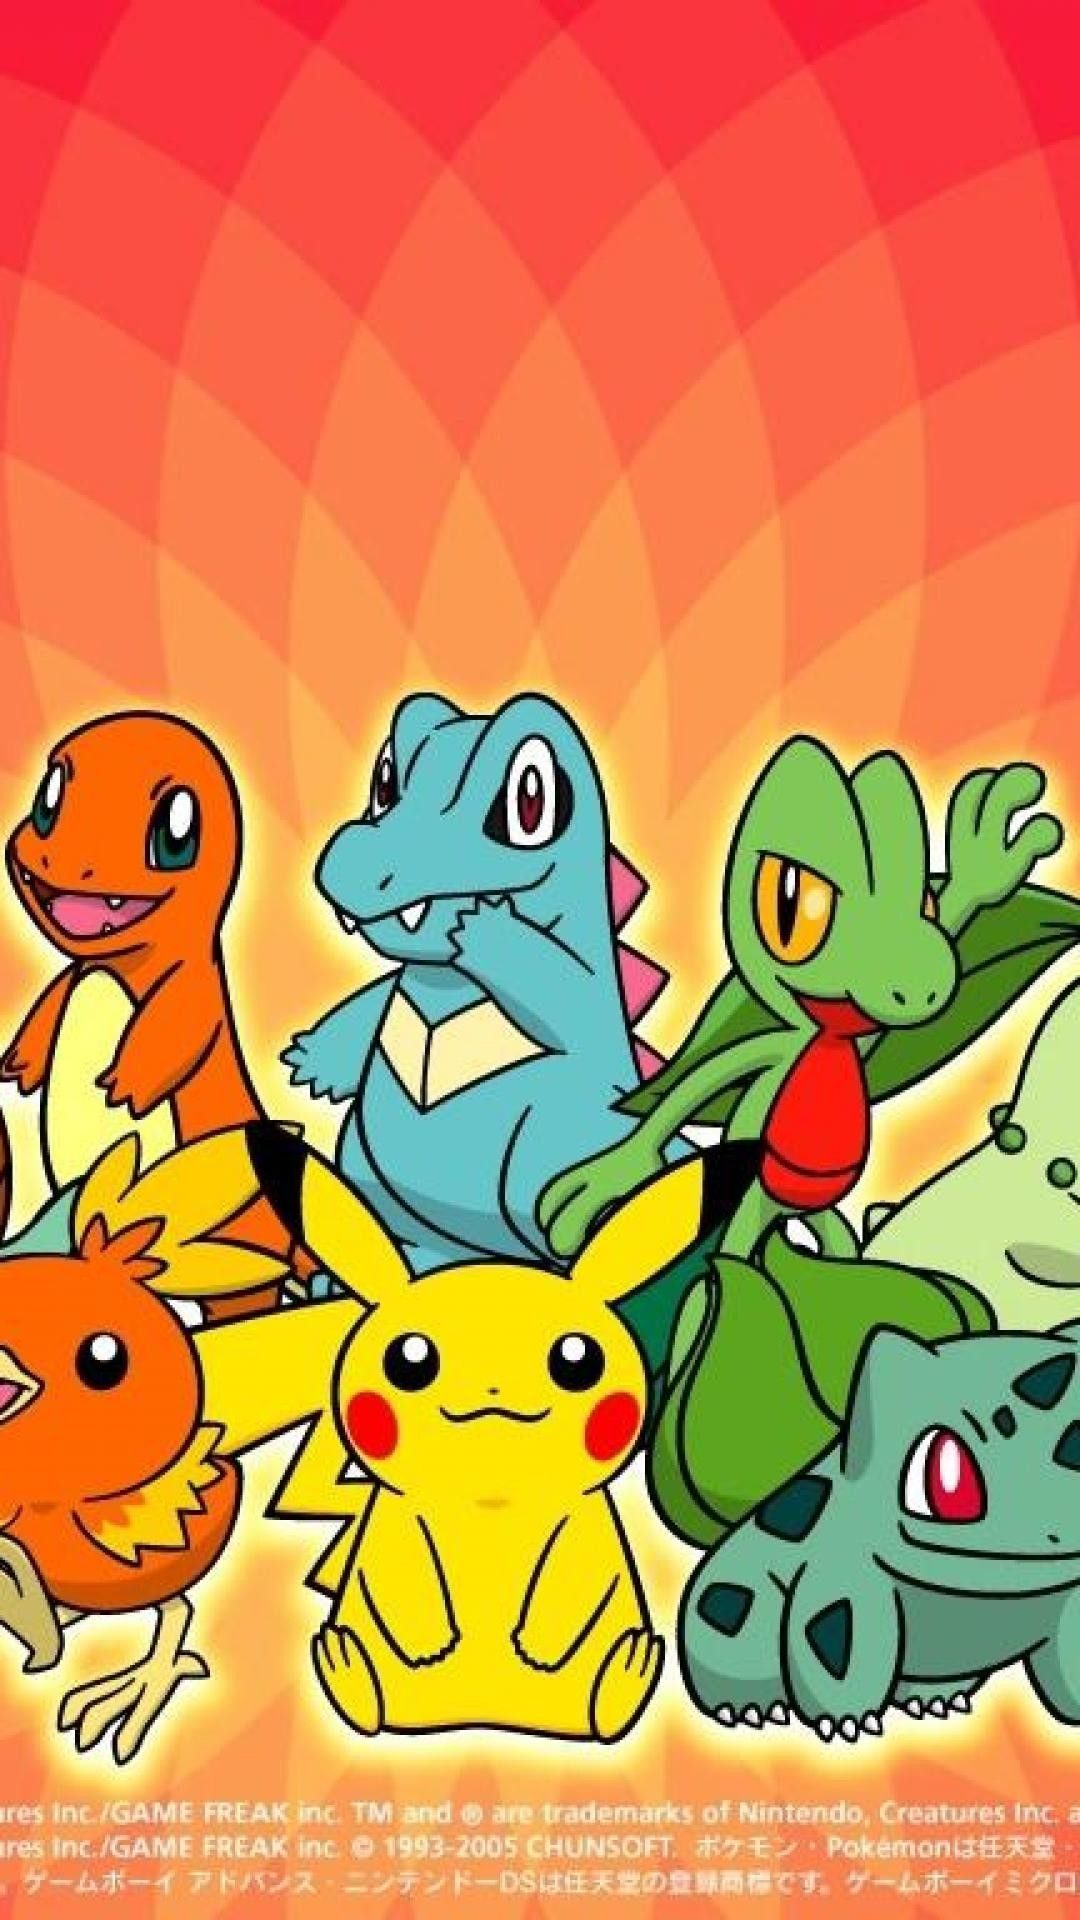 Legendary Pokemon Background » Hupages » Download Iphone